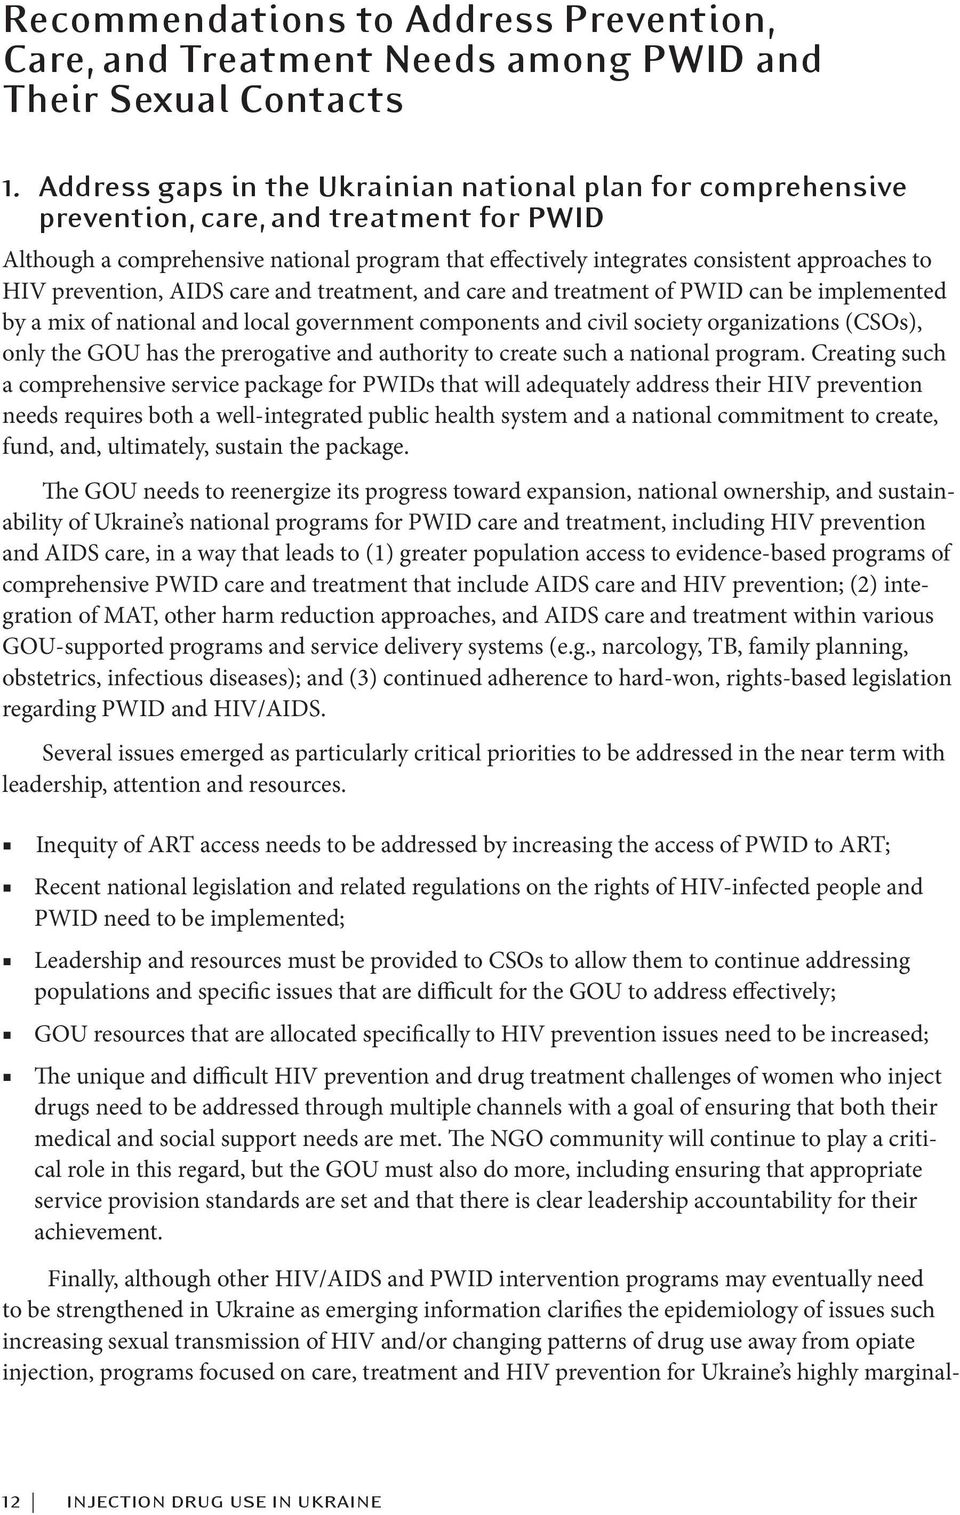 HIV prevention, AIDS care and treatment, and care and treatment of PWID can be implemented by a mix of national and local government components and civil society organizations (CSOs), only the GOU